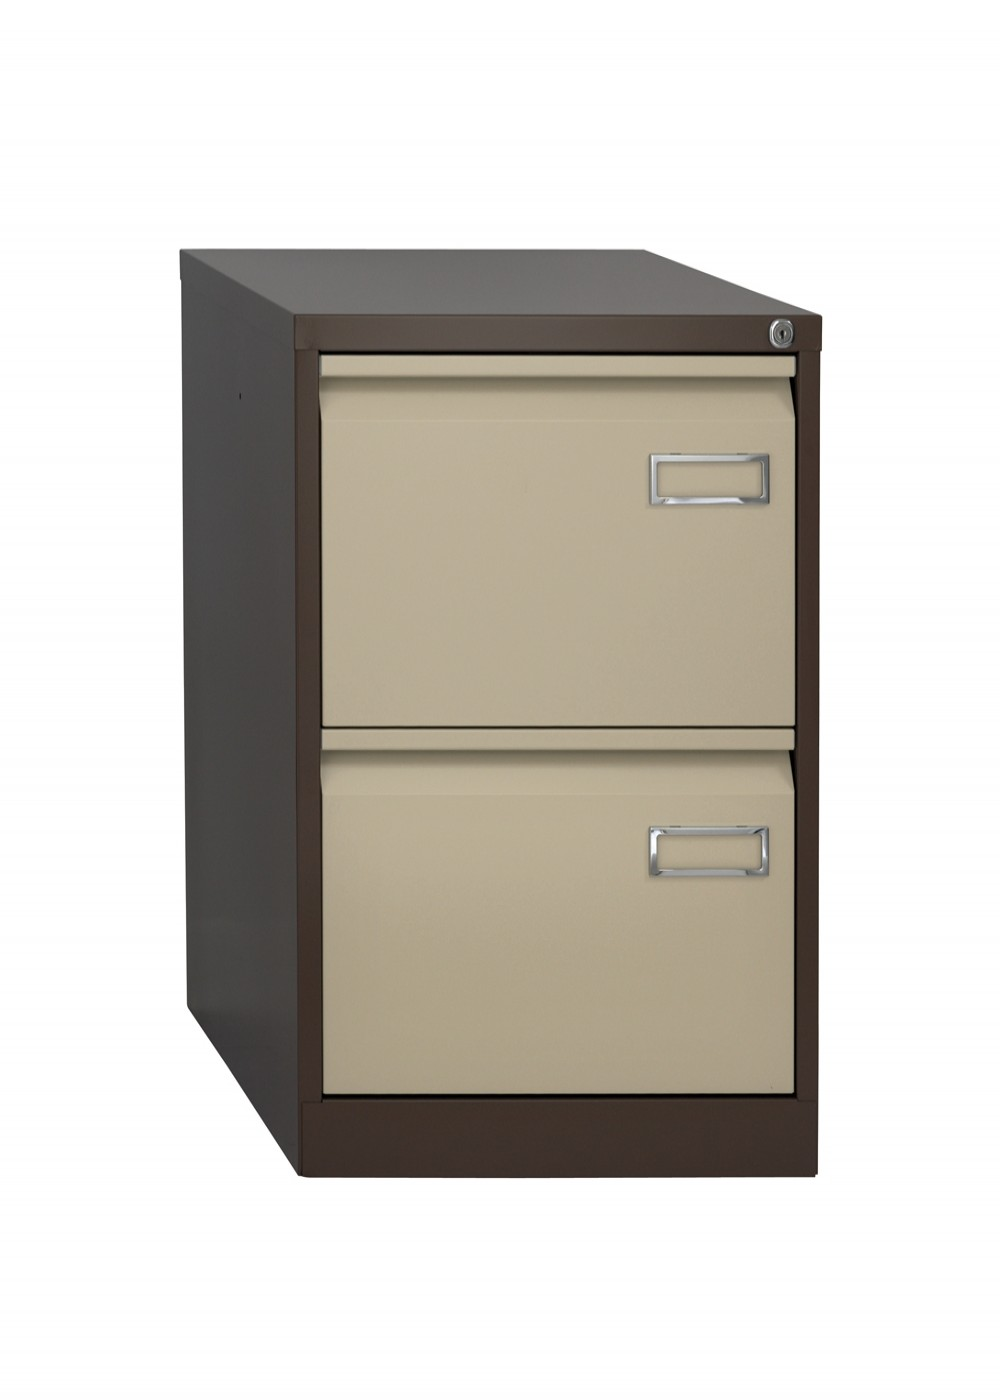 Brilliant Bisley File Cabinet for Best File Storage Ideas: Bisley File Cabinet | Bisley Furniture | Three Drawer File Cabinets